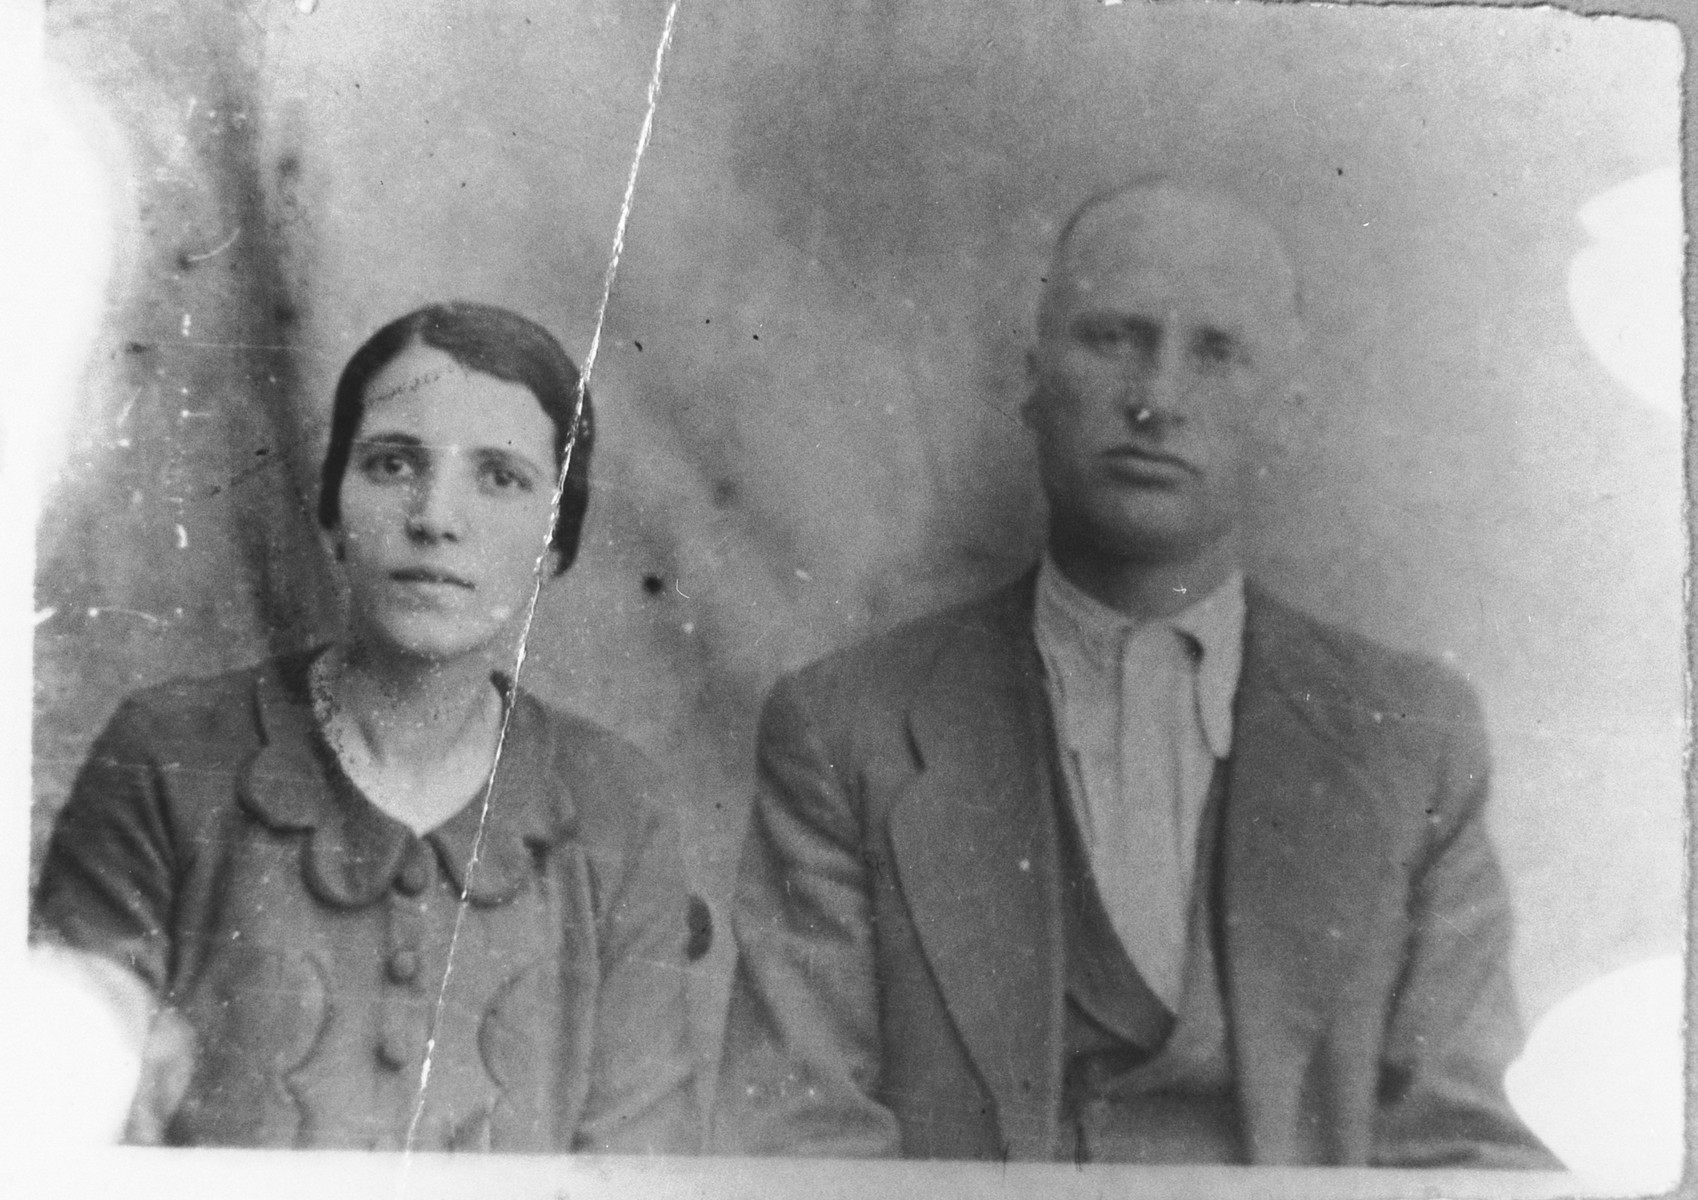 Portrait of Solomon Aroesti, son of Mishulam Aroesti, and his wife Ester.  Solomon was a second-hand dealer.  They lived at Ferizovatska 13 in Bitola.